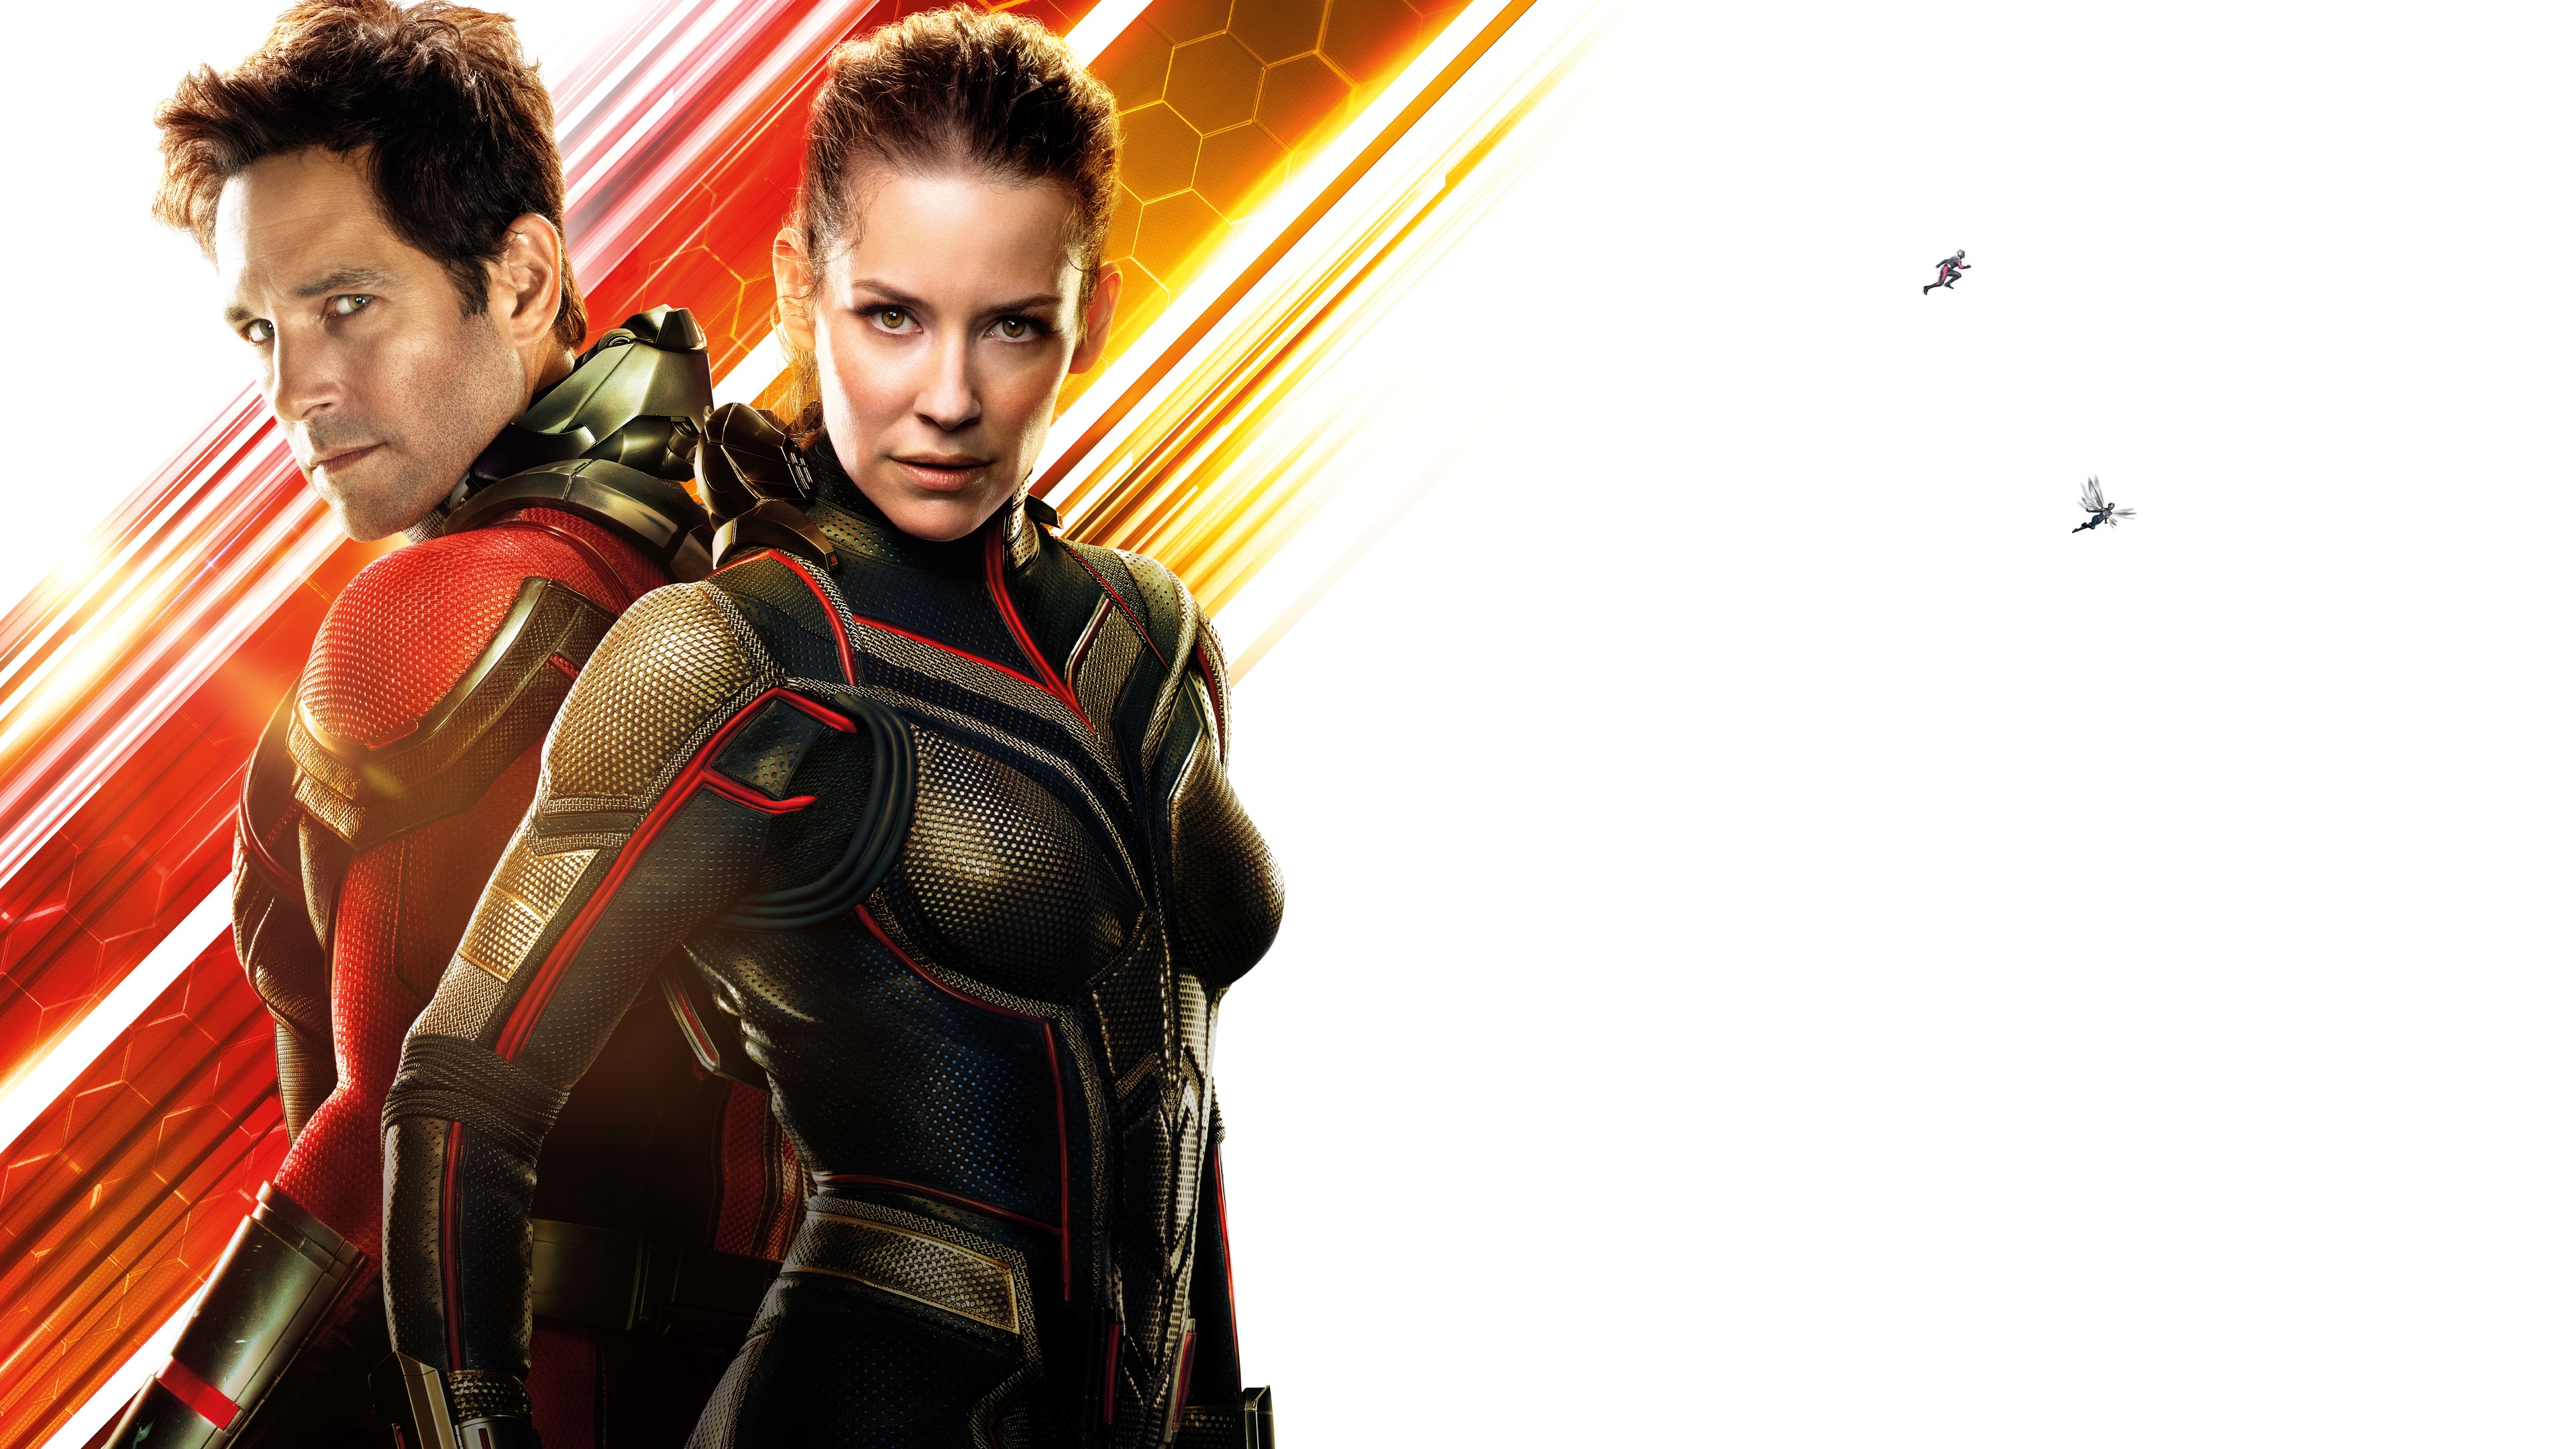 antman and the wasp 12k 1537645166 - Antman And The Wasp 12k - movies wallpapers, hd-wallpapers, ant man wallpapers, ant man and the wasp wallpapers, 8k wallpapers, 5k wallpapers, 4k-wallpapers, 2018-movies-wallpapers, 12k wallpapers, 10k wallpapers